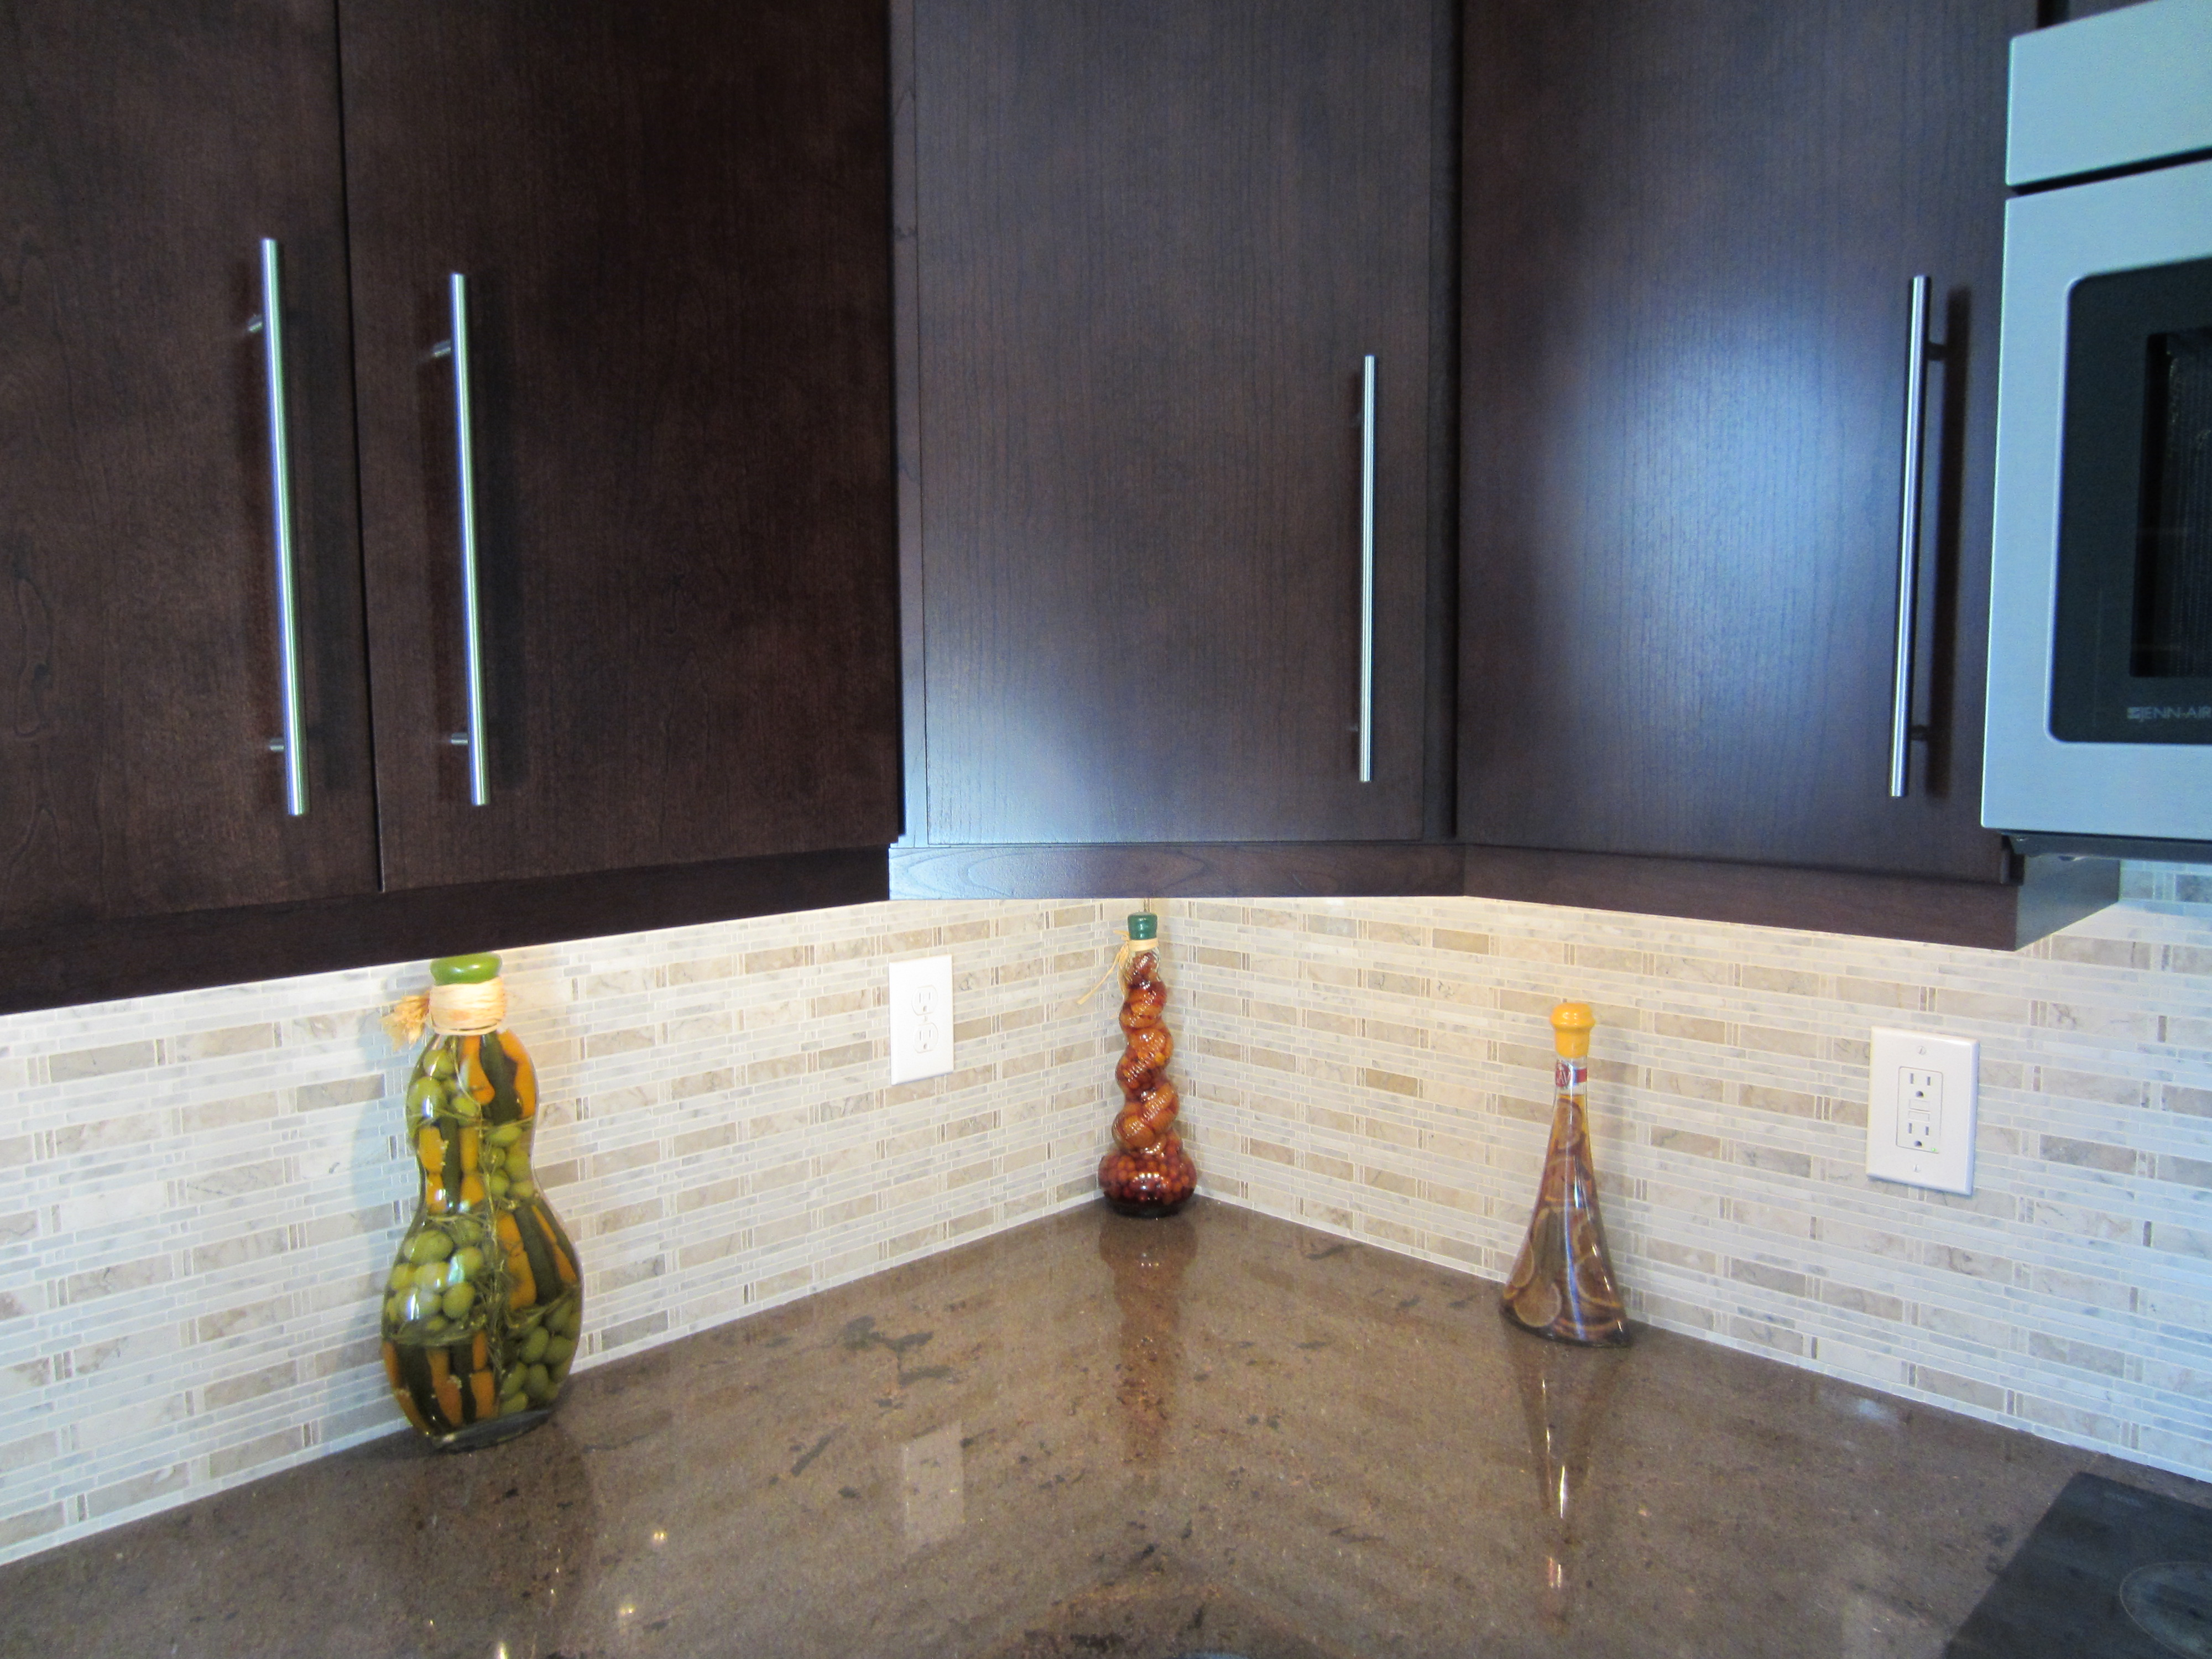 Bamboo Backsplash Carrara Marble Mosaic Tile Backsplash Tile Design Ideas